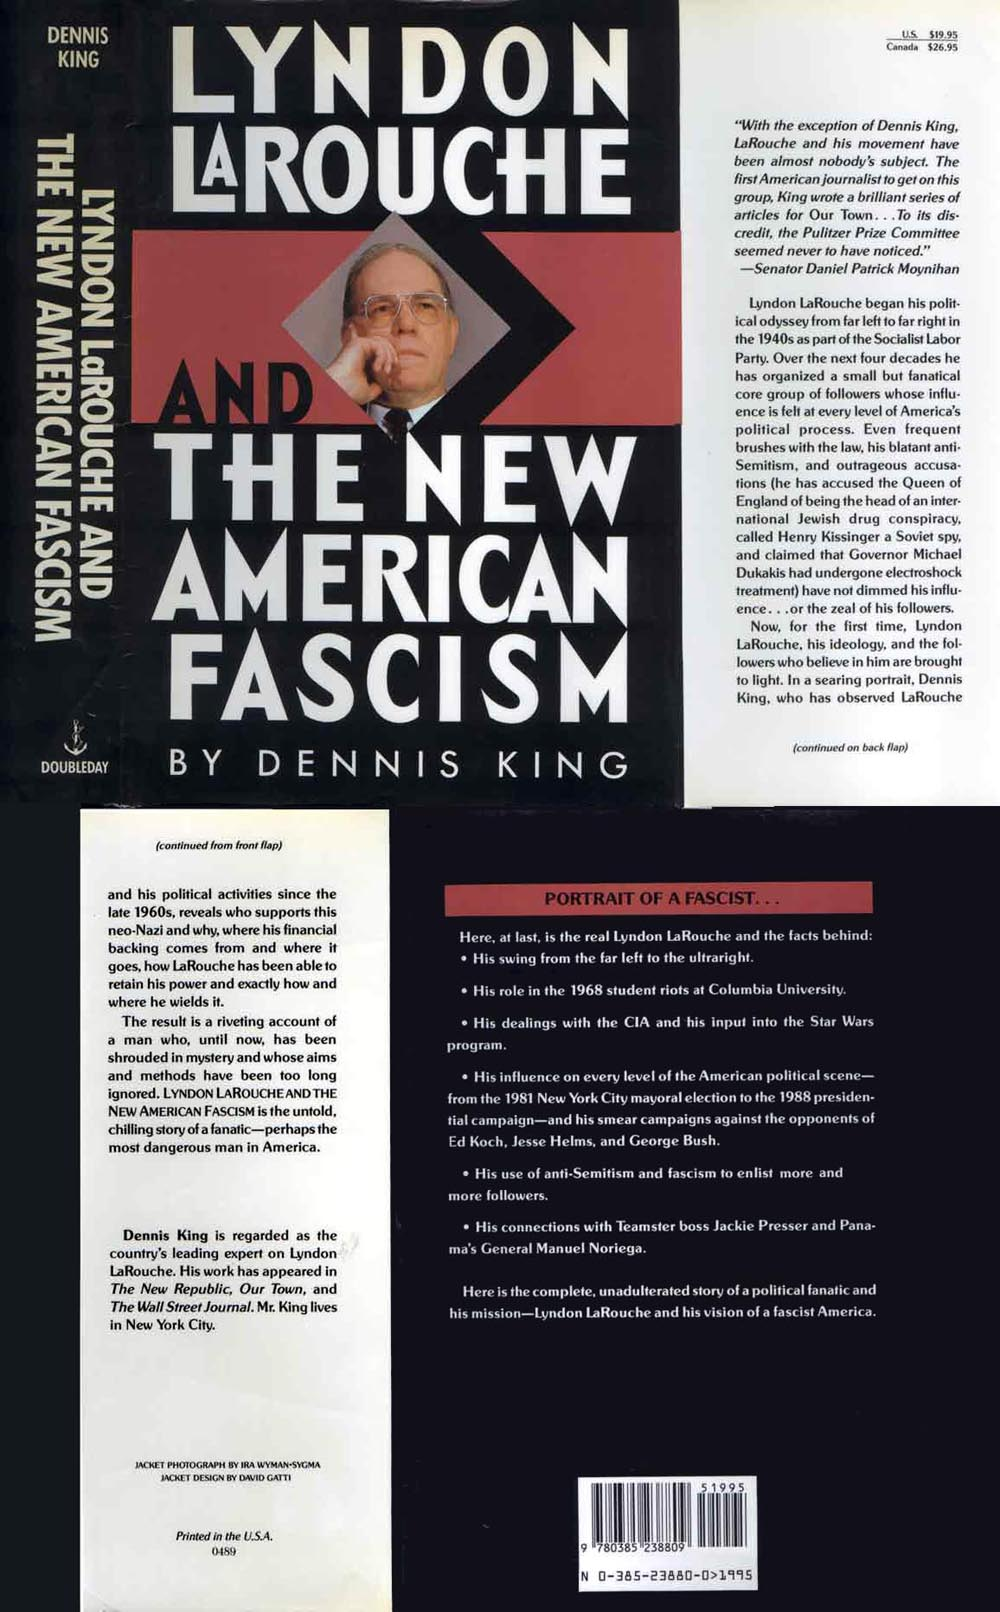 Lyndon LaRouche and The New American Fascism